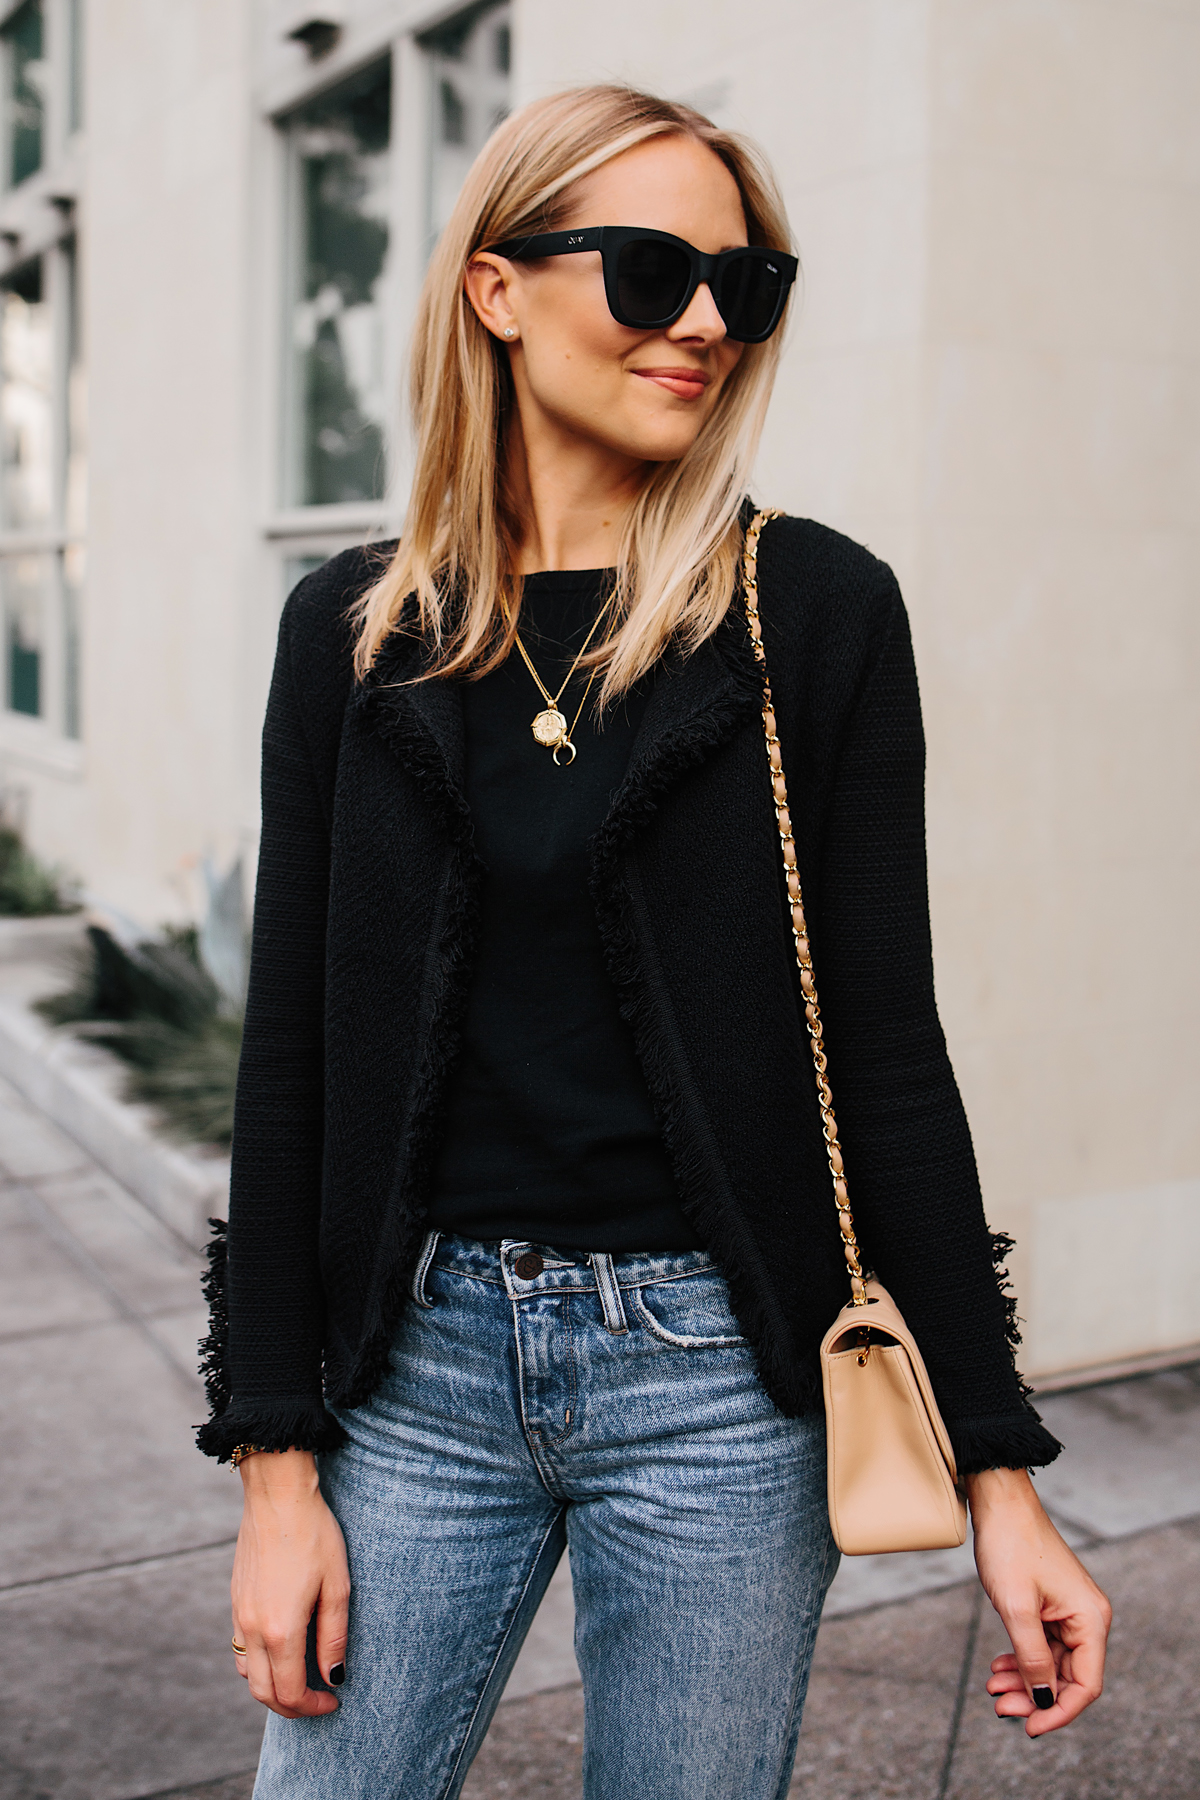 Fashion Jackson Black Tweed Jacket Jeans Outfit Fashion Jackson San Diego Fashion Blogger Street Style